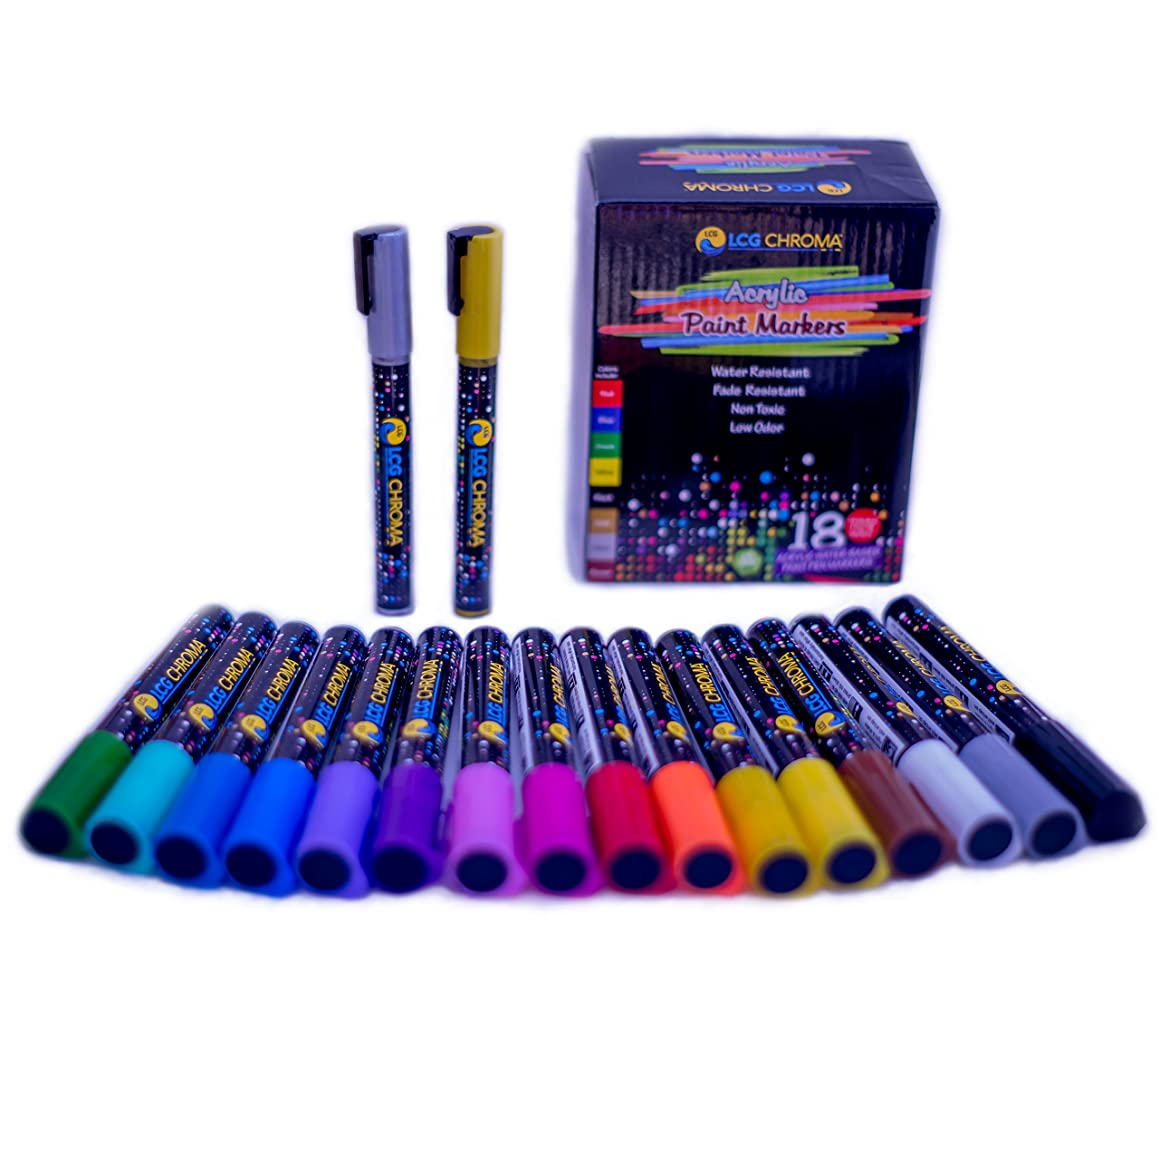 Multi-Color Acrylic Paint Marker/Pen Set with 18 Bullet & Chisel, Medium & Fine Tips - Use on Wood, Glass, Fabric, Ceramic, Rocks, Metal, Porcelain or Paper for DIY Projects, Art, and Painting